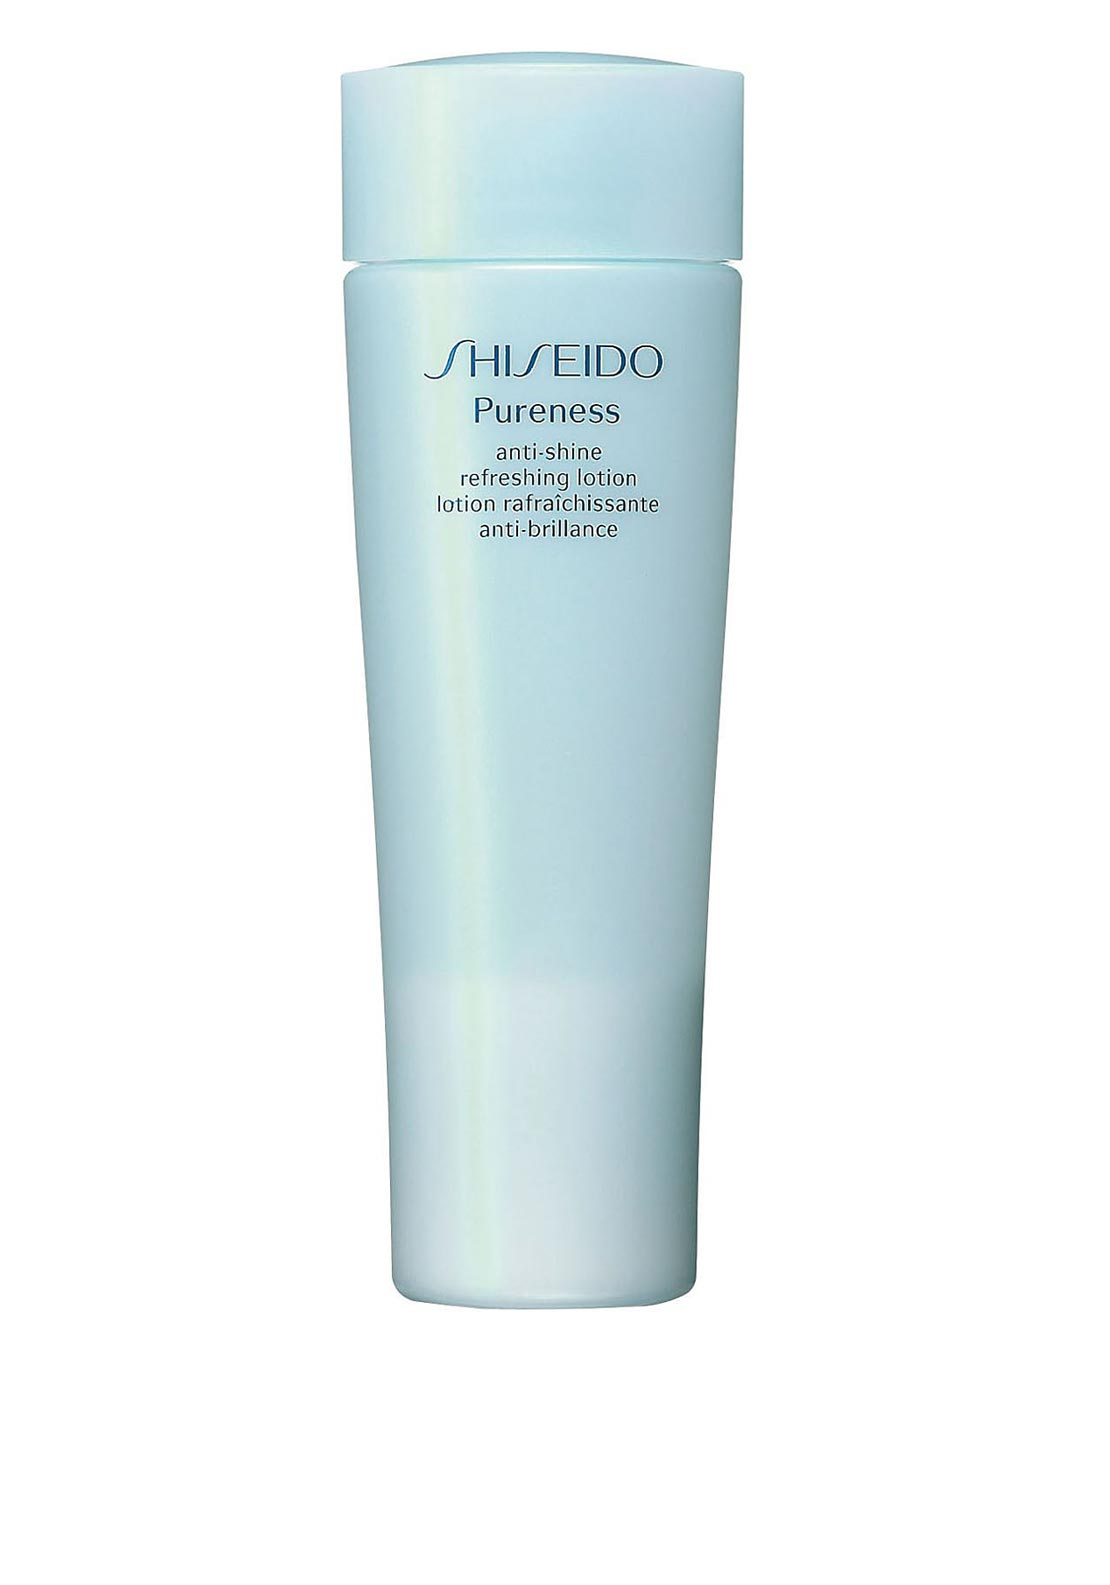 Shiseido Pureness Anti-Shine Refreshing Lotion, 150ml